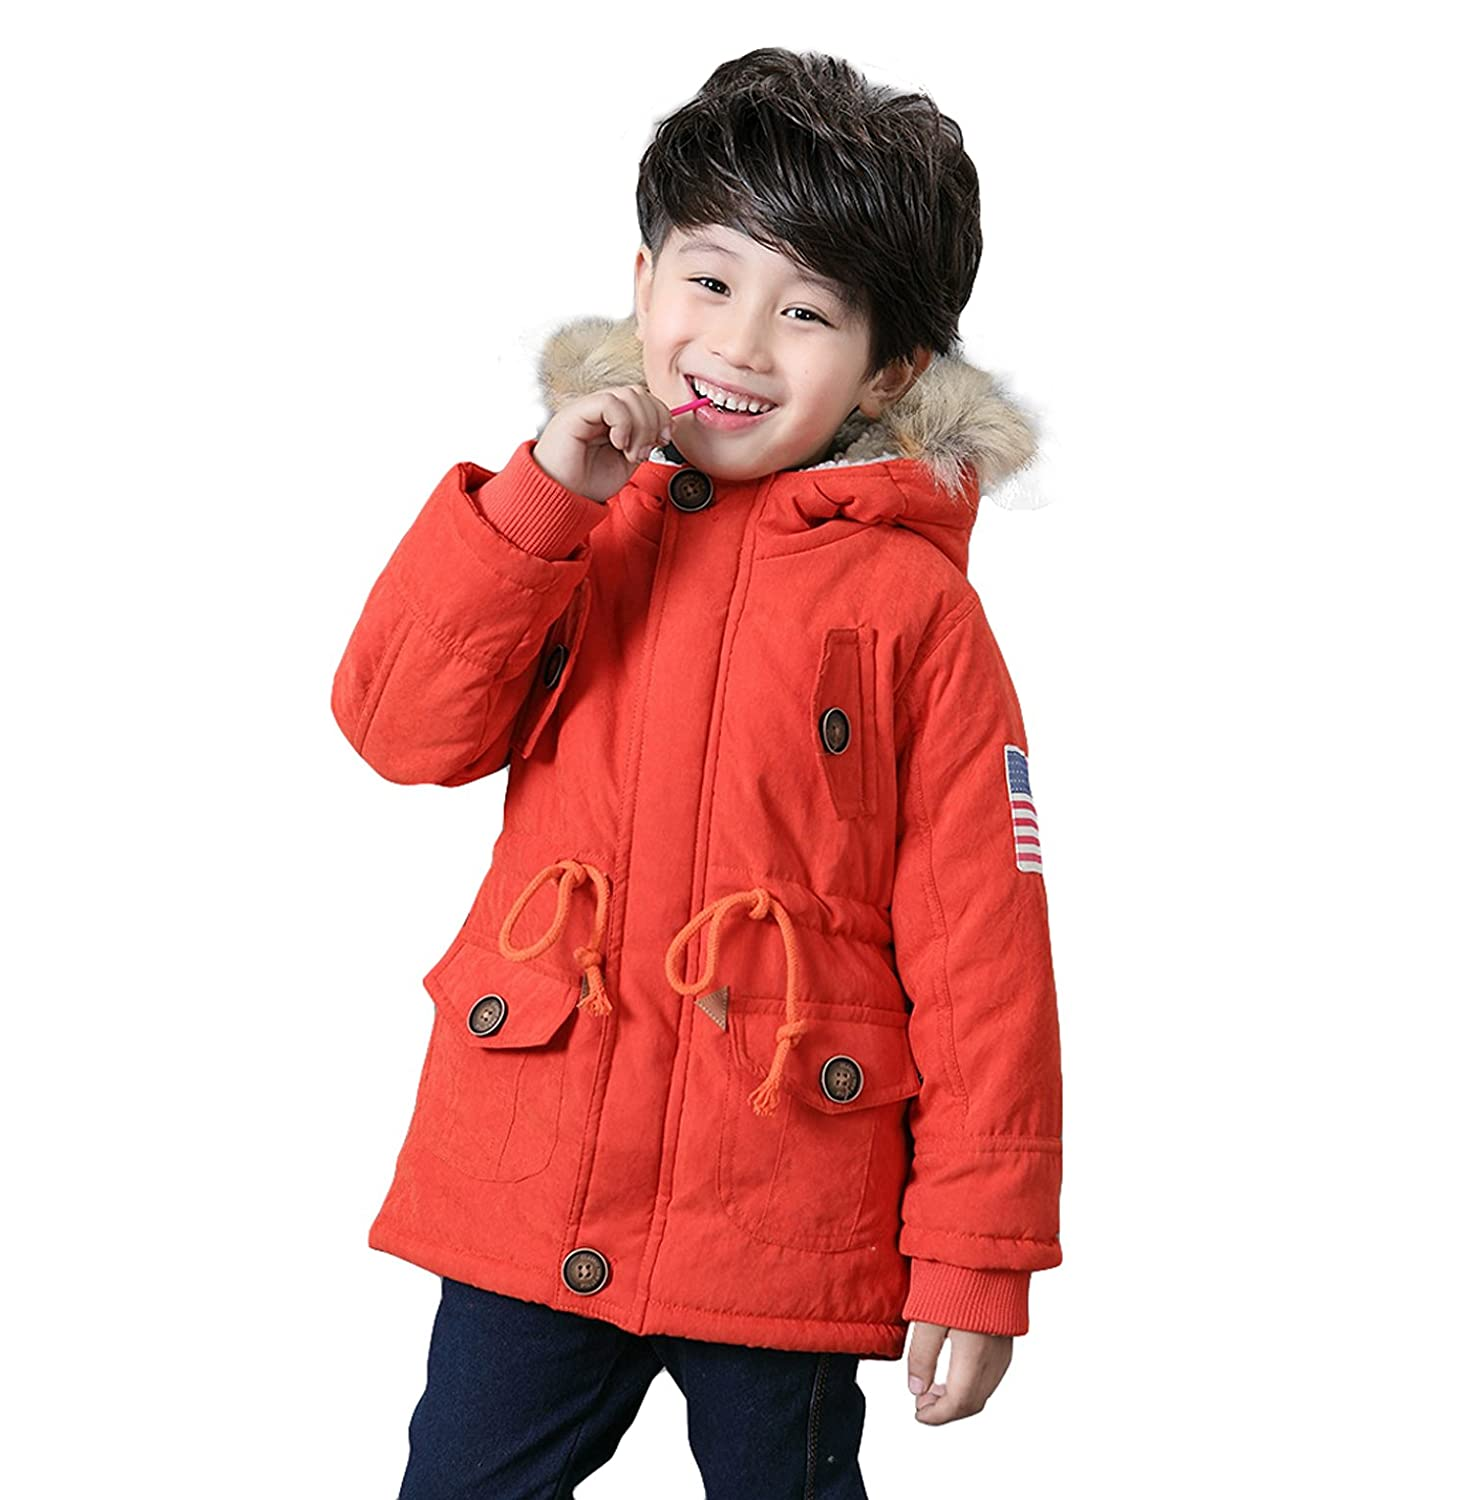 3b7c84747ef3 Unisex Boys Girls Winter Hooded Coat Kids USA Flag Thick Cotton ...